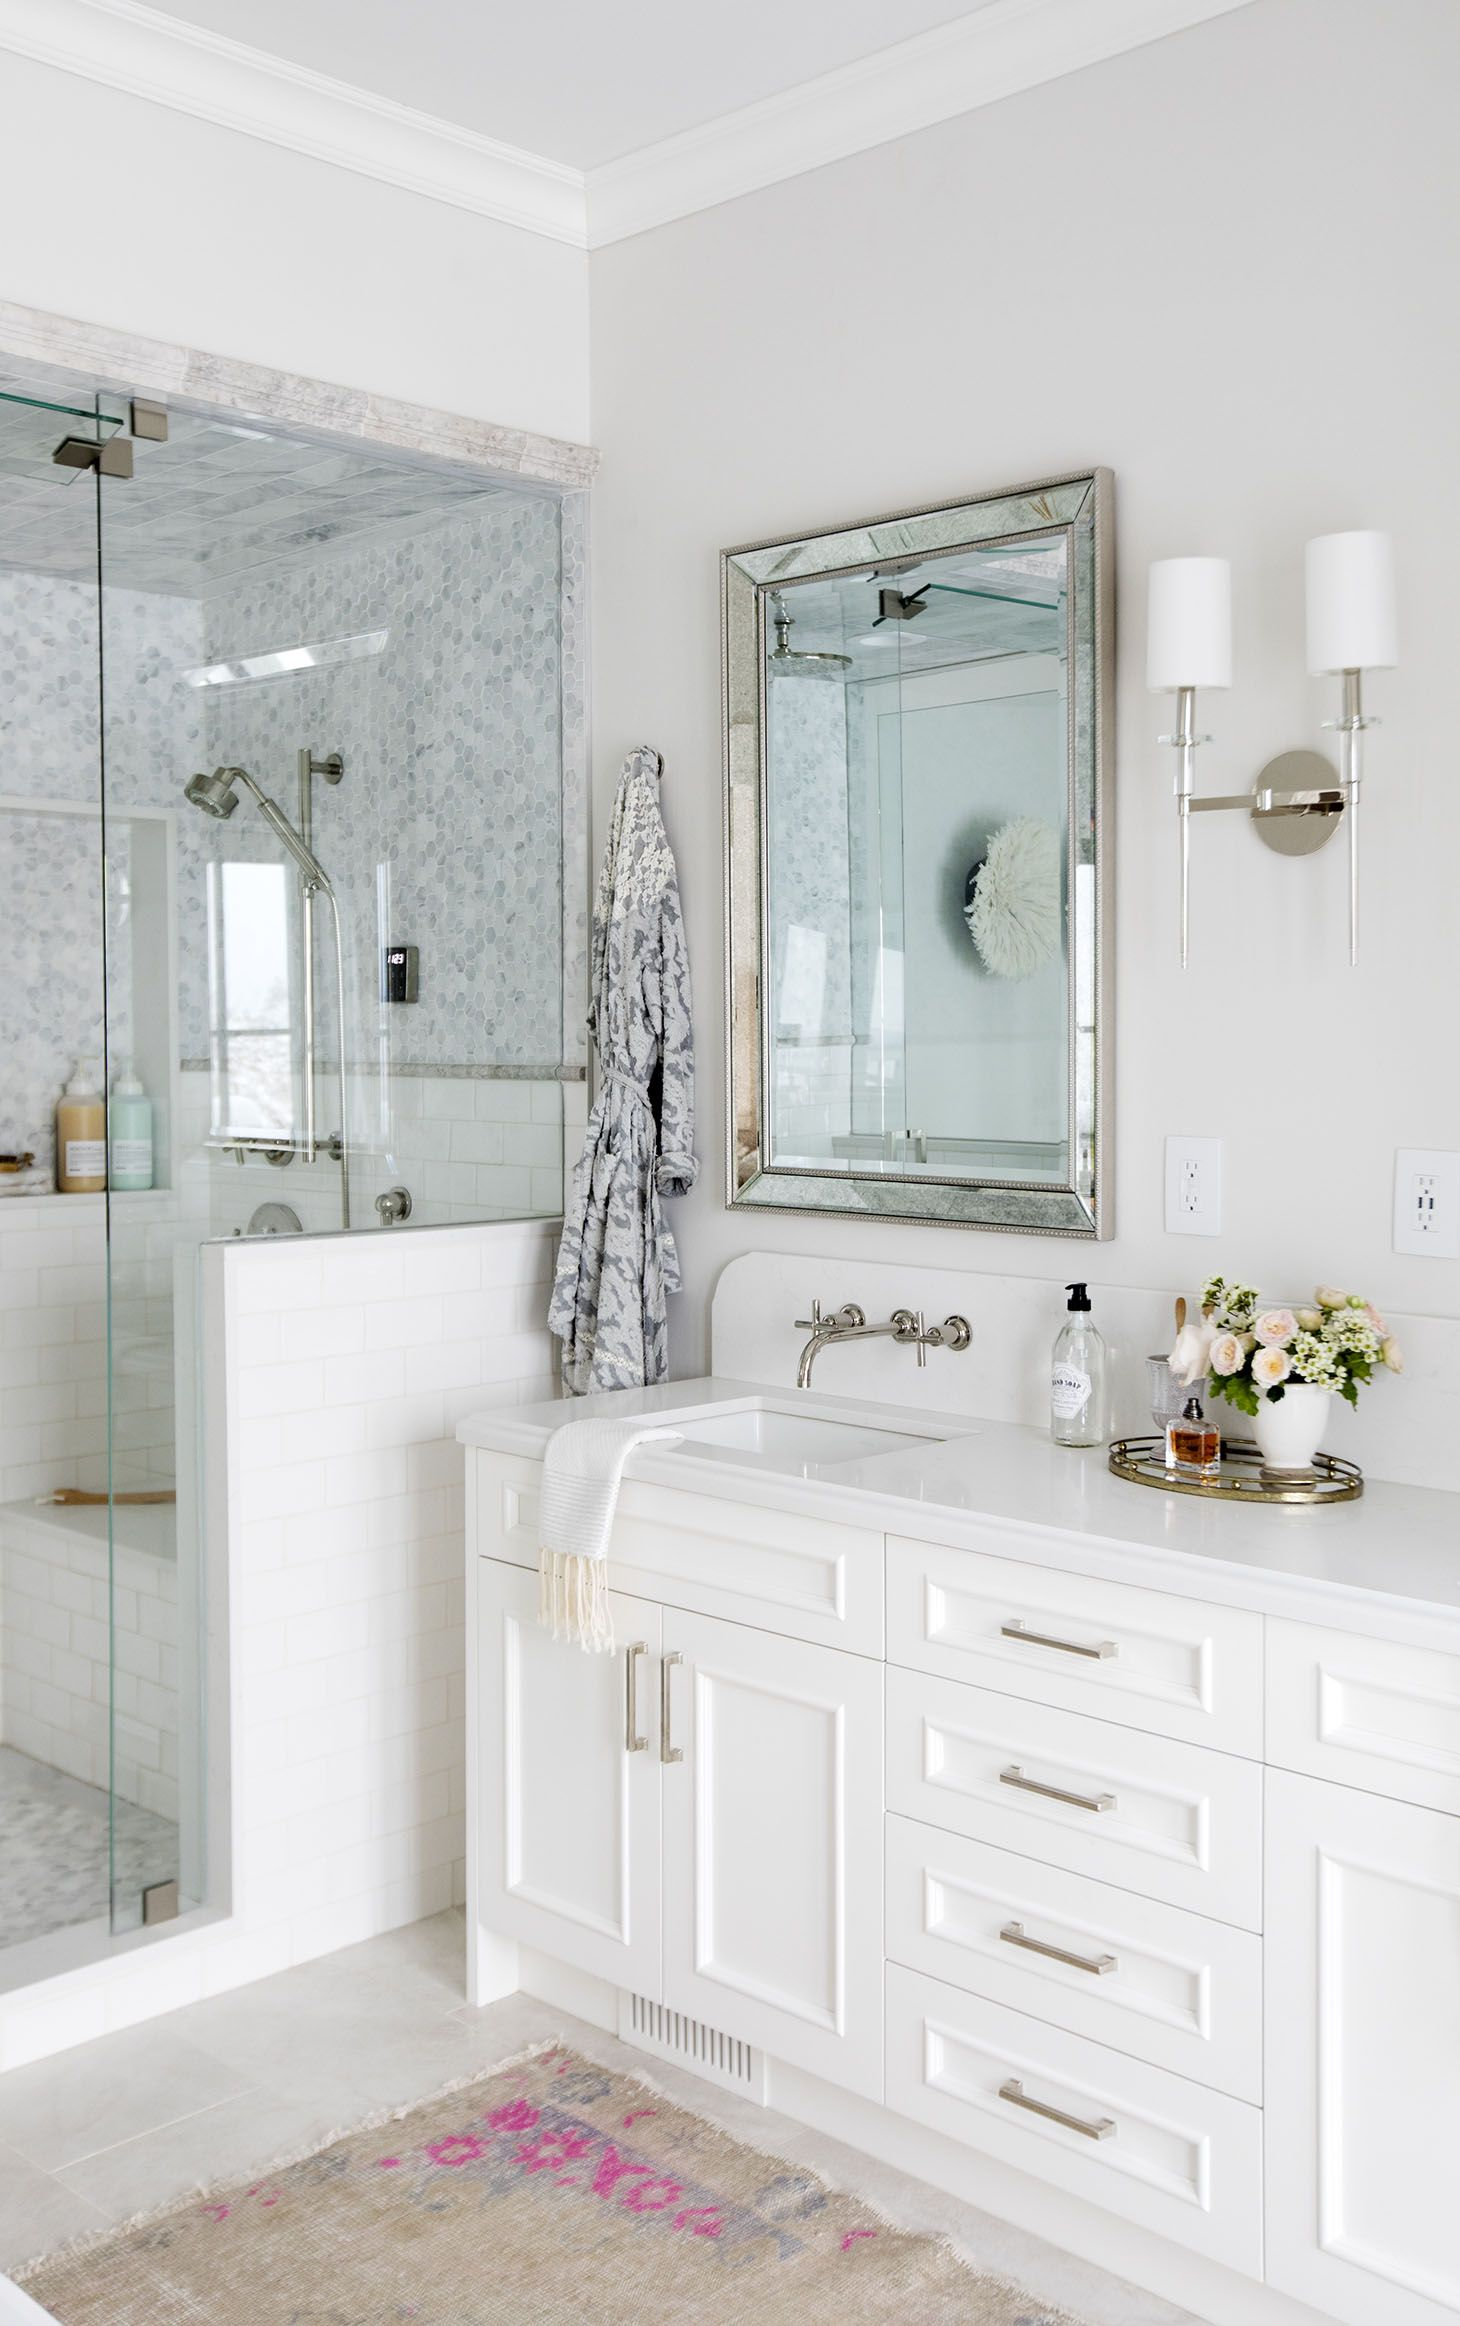 Home Tour Series Master Ensuite In 2020 Simple Bathroom Decor Bathroom Vanity Simple Bathroom